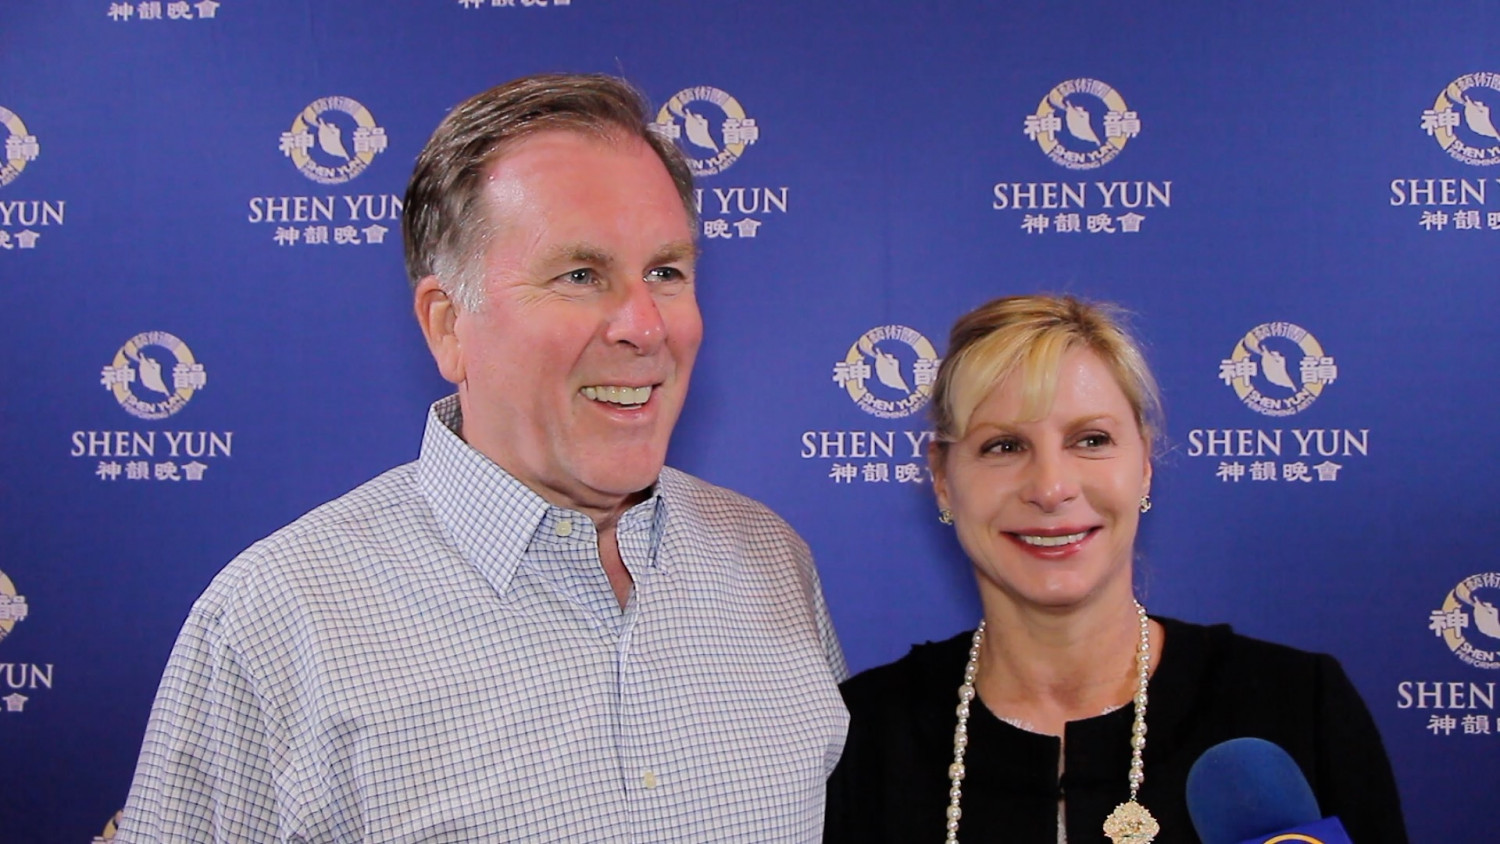 After 13 Years of Waiting, Managing Partner Left Impressed With Shen Yun's Production